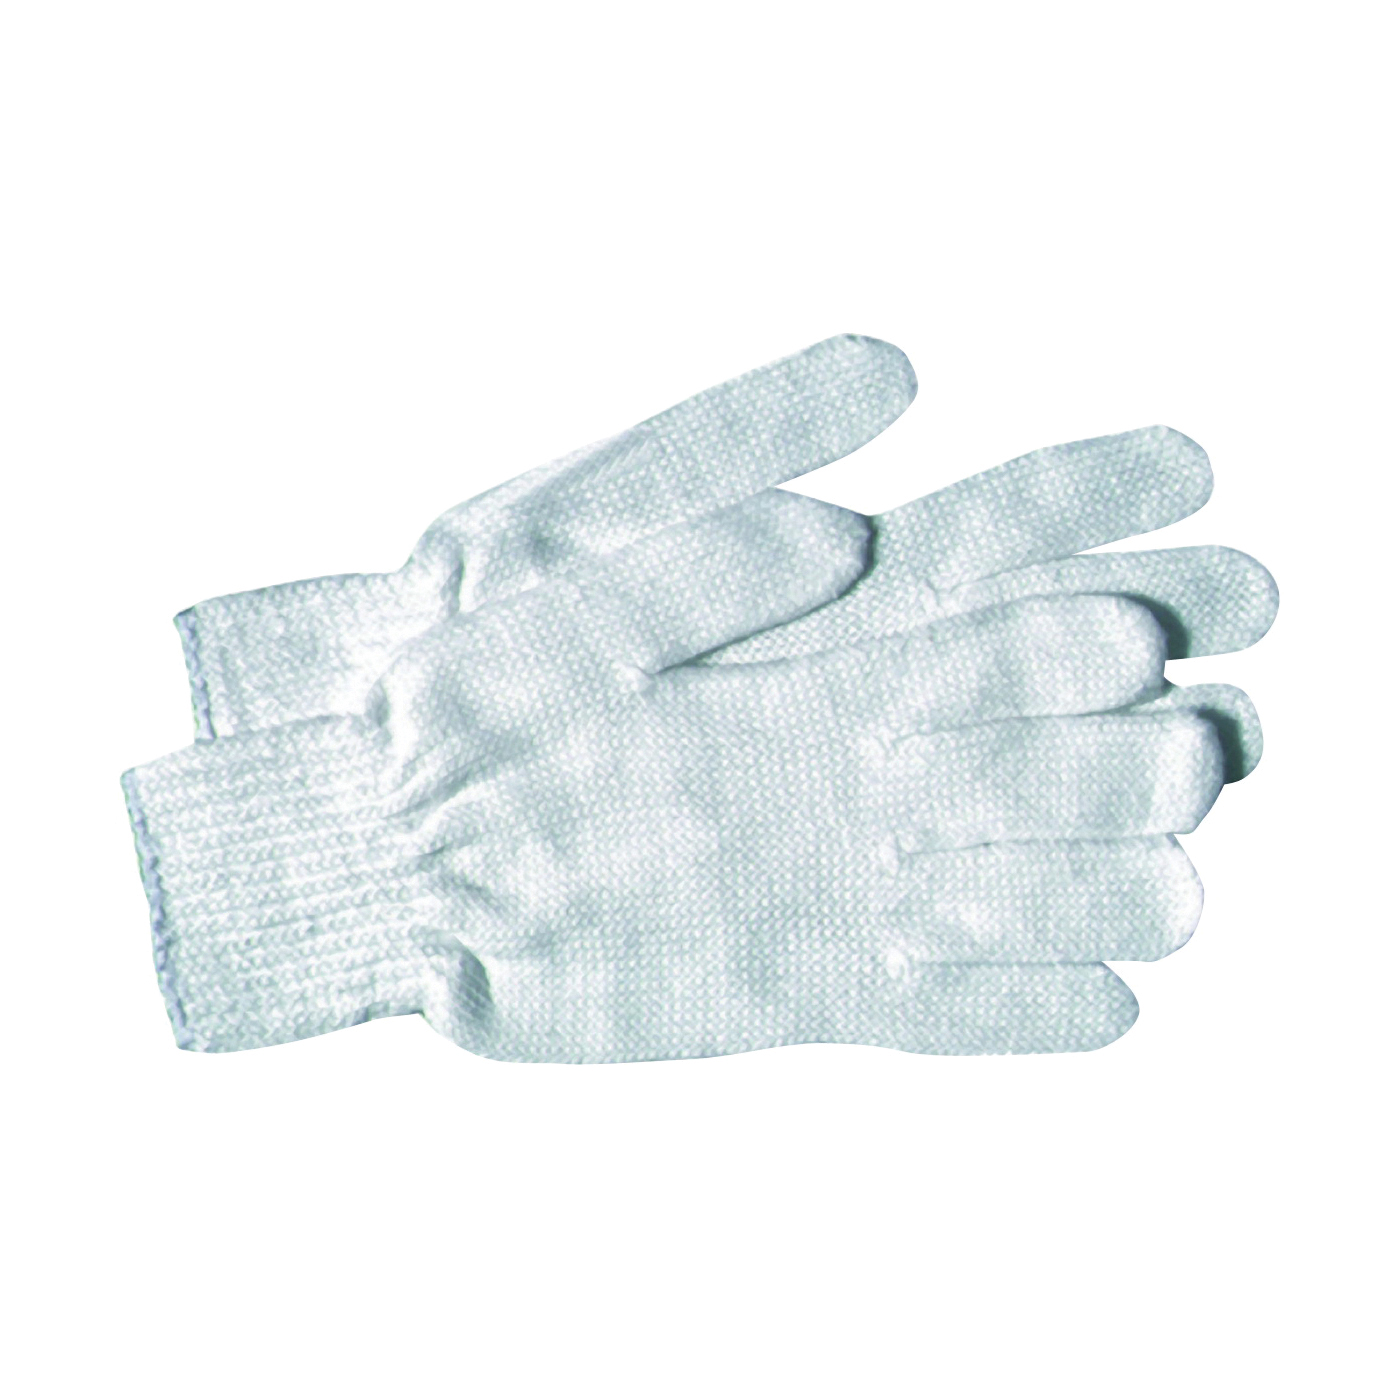 Picture of BOSS 300WL Bleached Reversible Protective Gloves, Men's, L, Knit Wrist Cuff, Cotton/Polyester, White